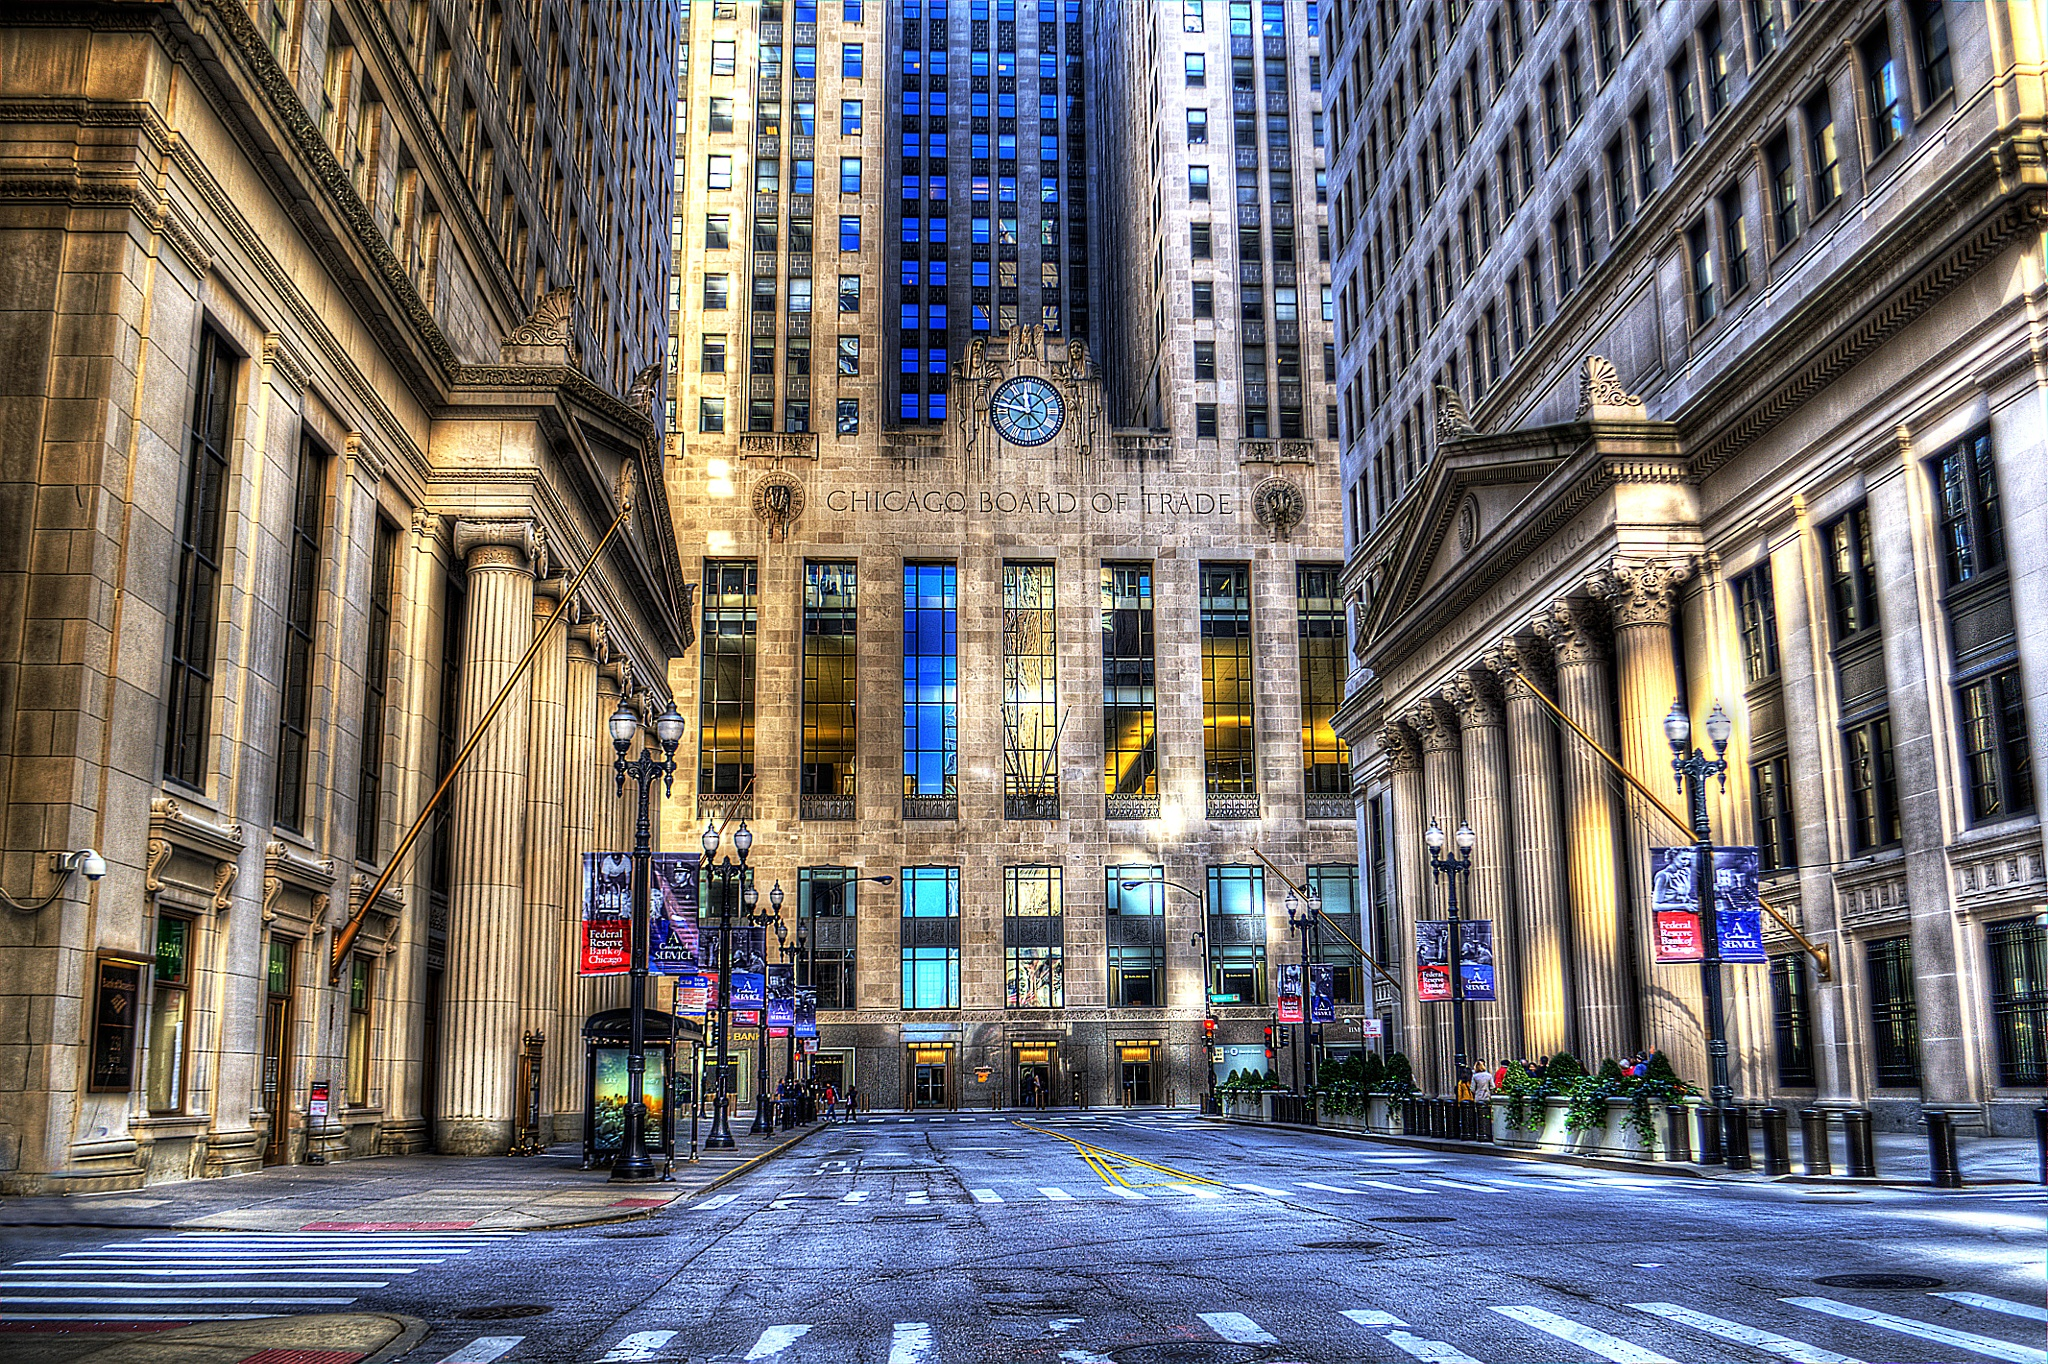 Chicago Board of Trade by J. Philip Larson Photography